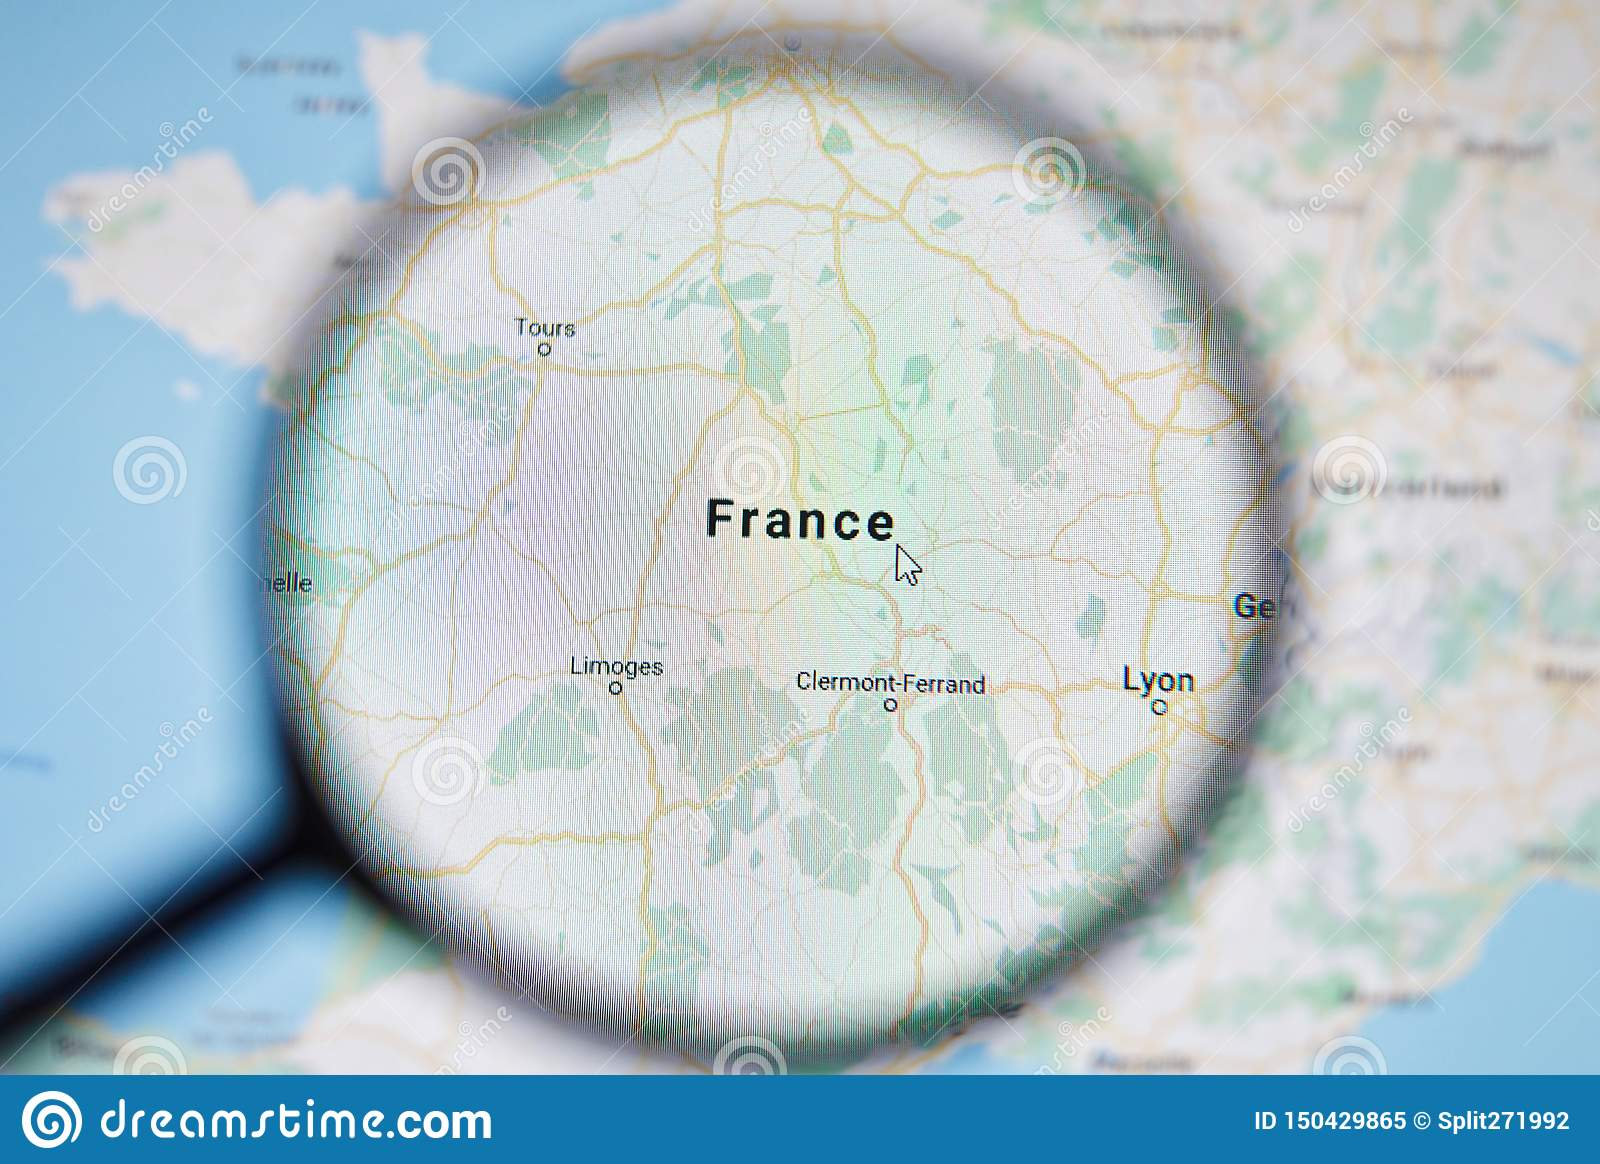 UKRAINE, ODESSA - APRIL 25, 2019: France On Google Maps ... on googlr maps, iphone maps, topographic maps, search maps, aerial maps, online maps, googie maps, bing maps, ipad maps, road map usa states maps, aeronautical maps, waze maps, stanford university maps, goolge maps, amazon fire phone maps, gogole maps, microsoft maps, msn maps, gppgle maps, android maps,